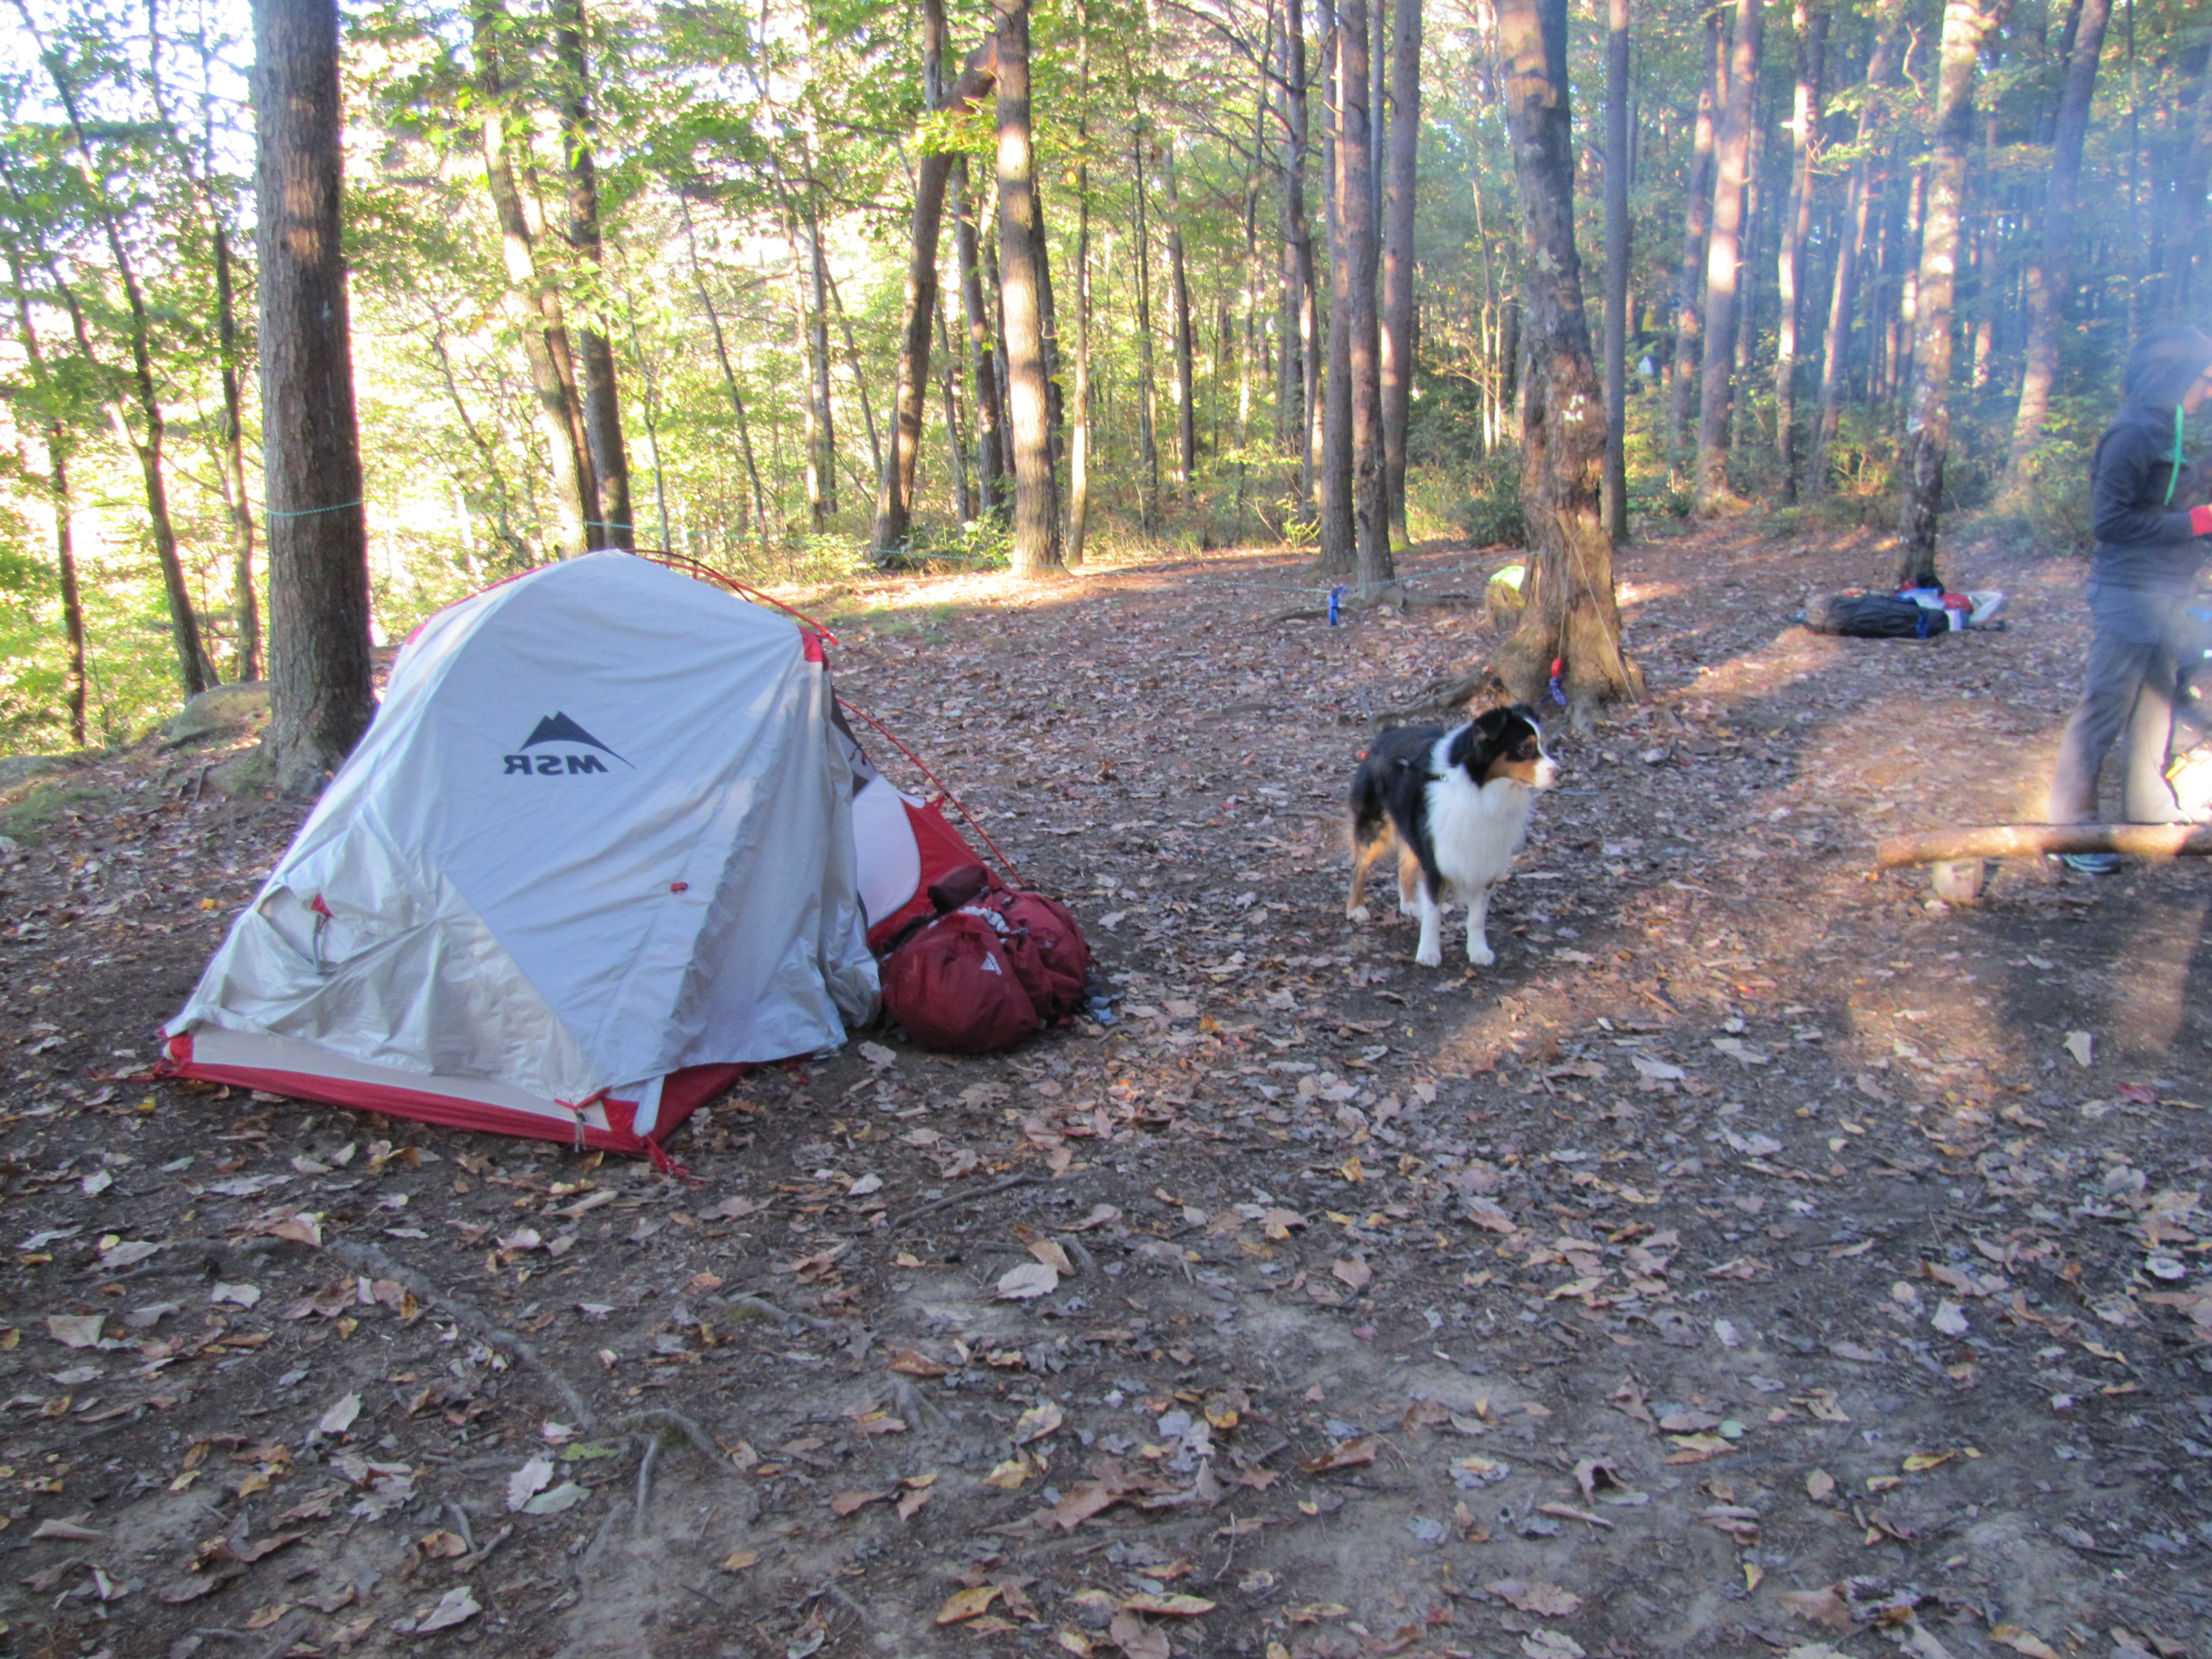 Savage Gulf Natural Area Primitive Camps – Midlife Hiking Club on tennessee state parks map, savage gulf hiking trails map, alabama gulf shores state park map, gulf state park backcountry trail map, gulf state park camping map, rock island state park map,